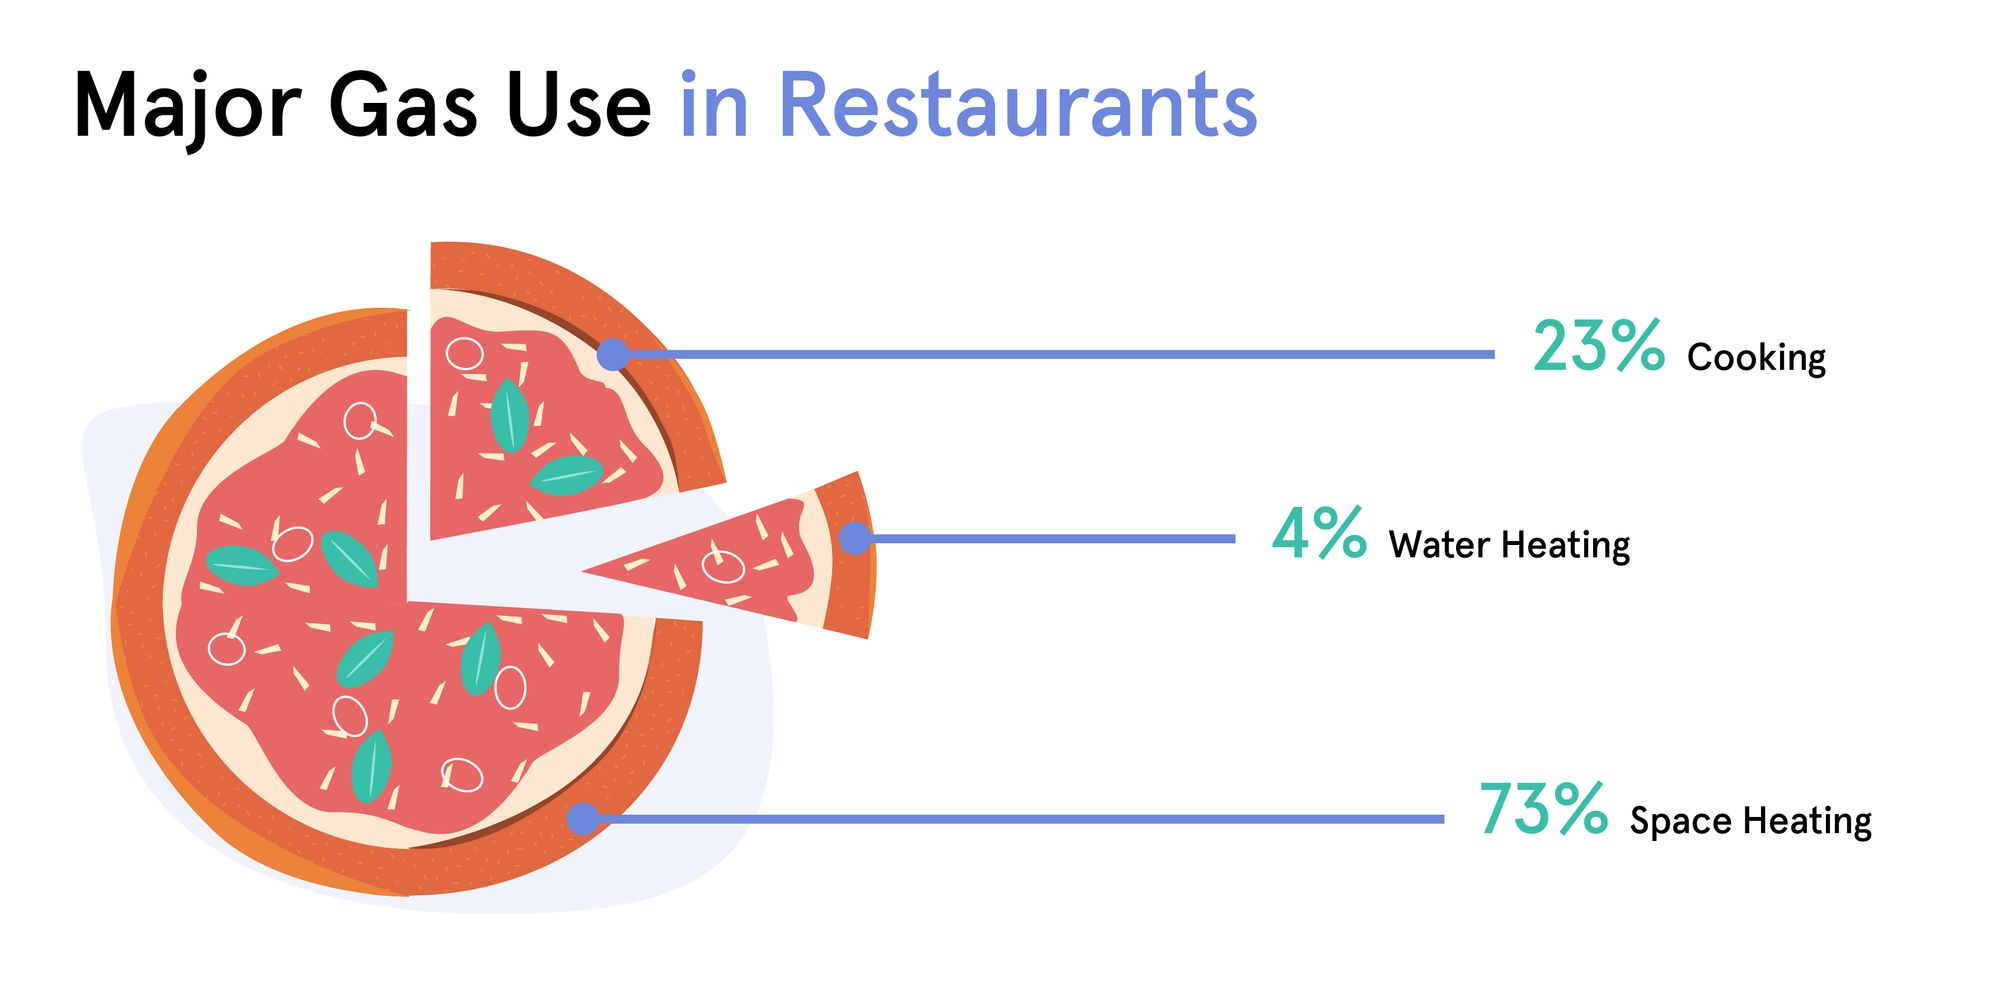 Major Gas Use in Restaurants